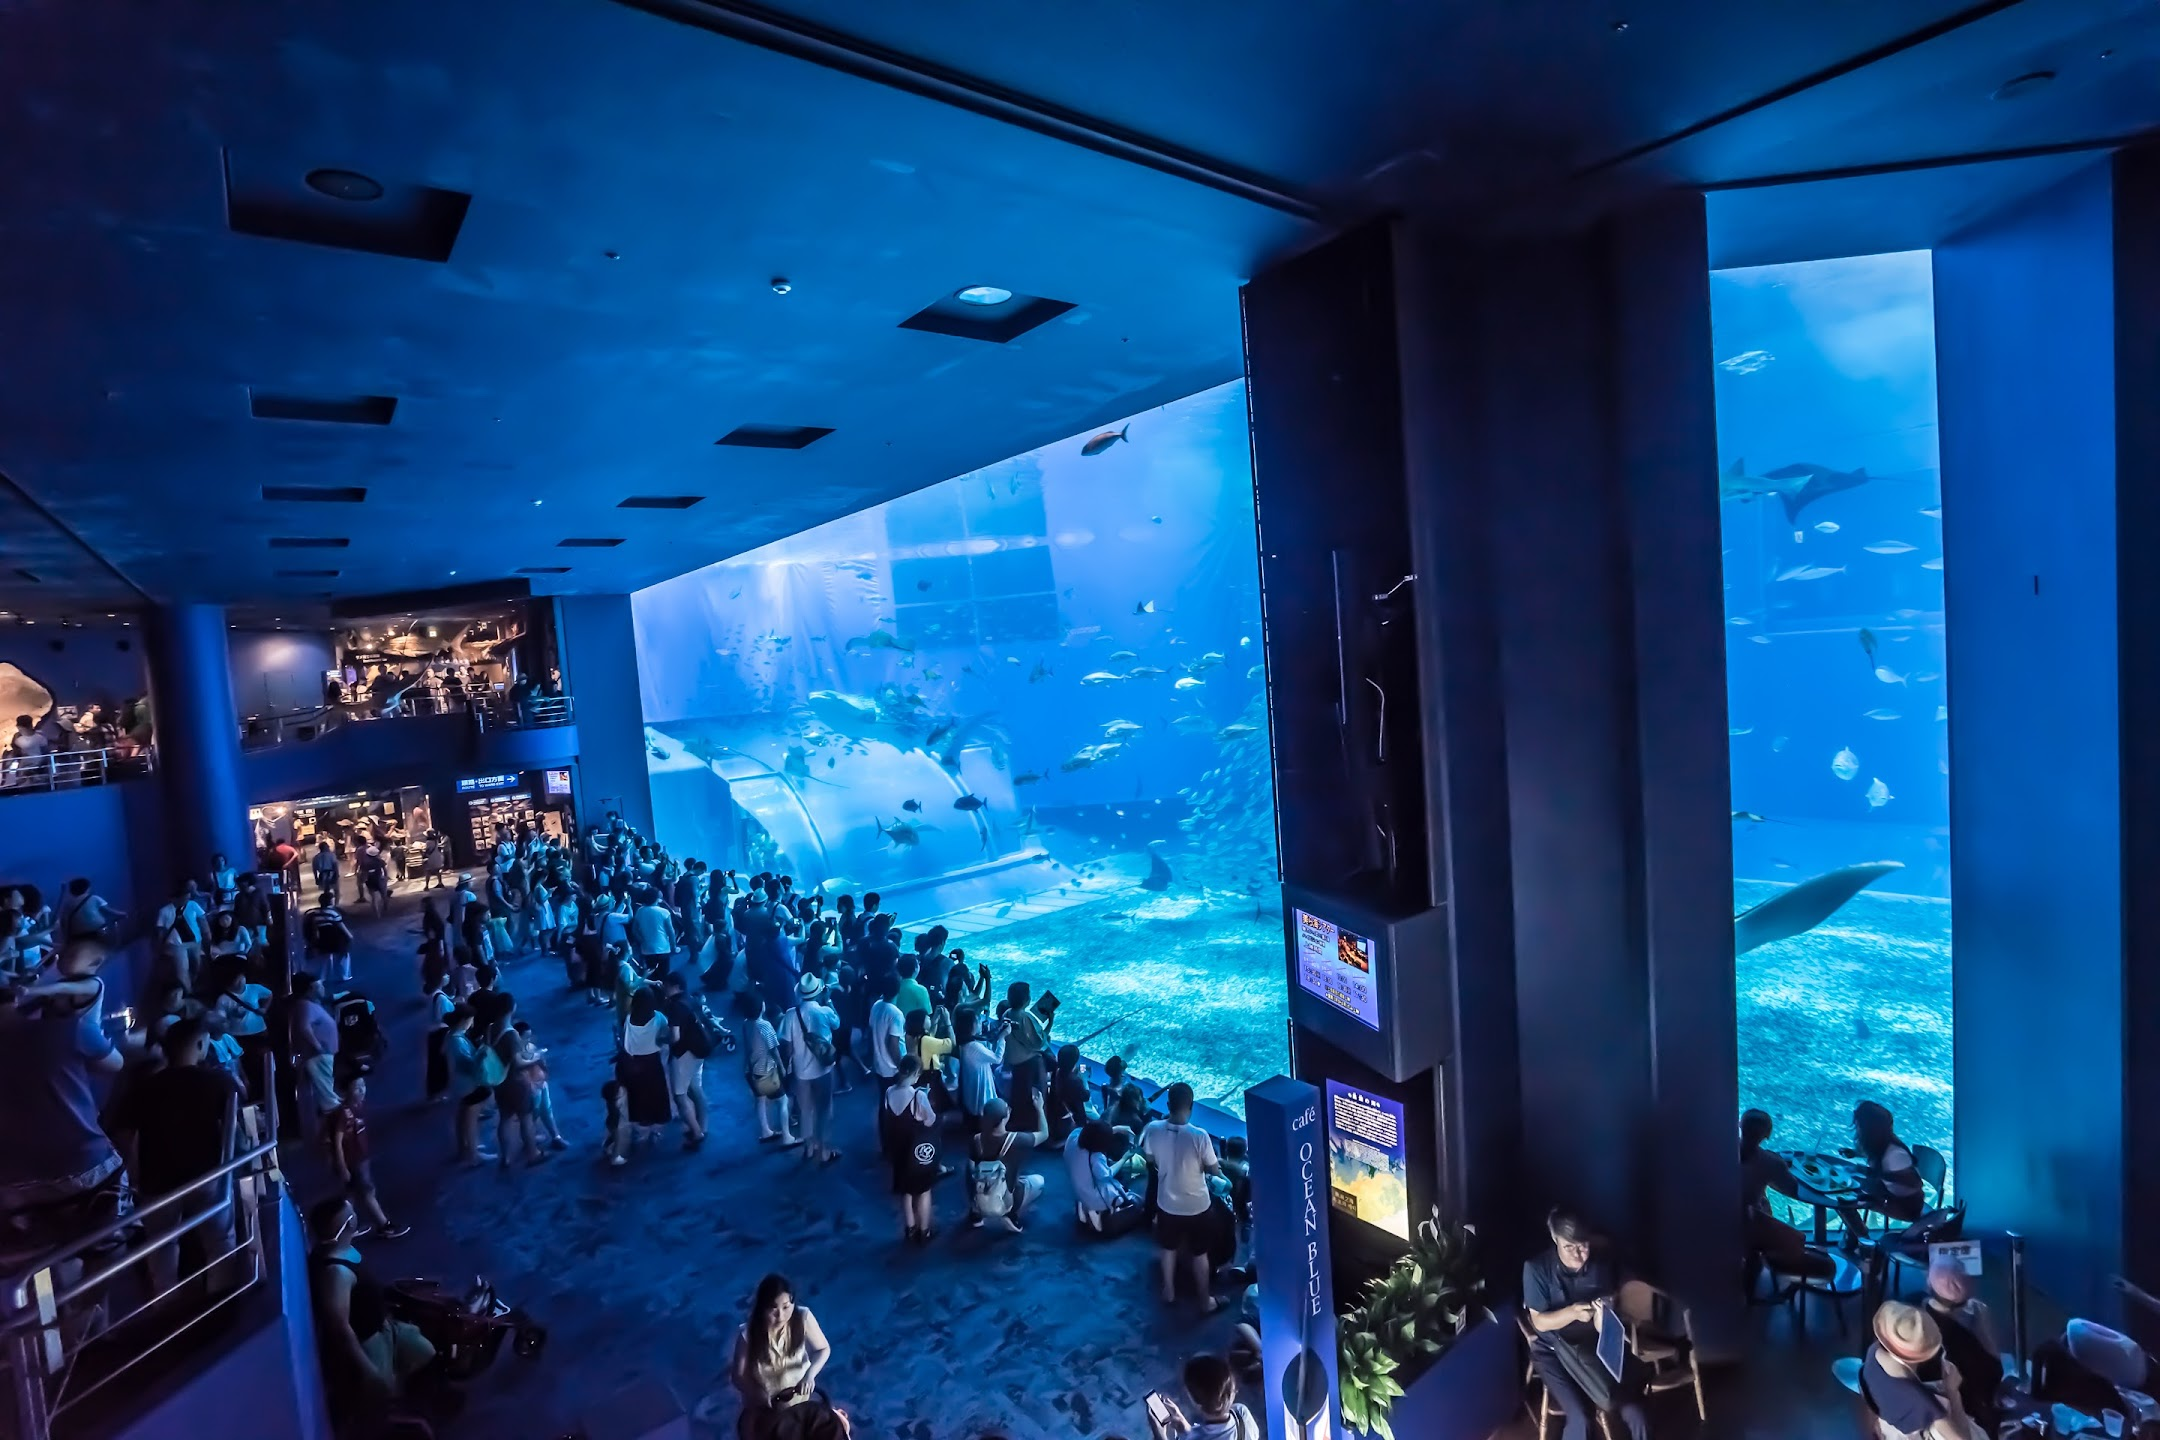 Okinawa Churaumi Aquarium1